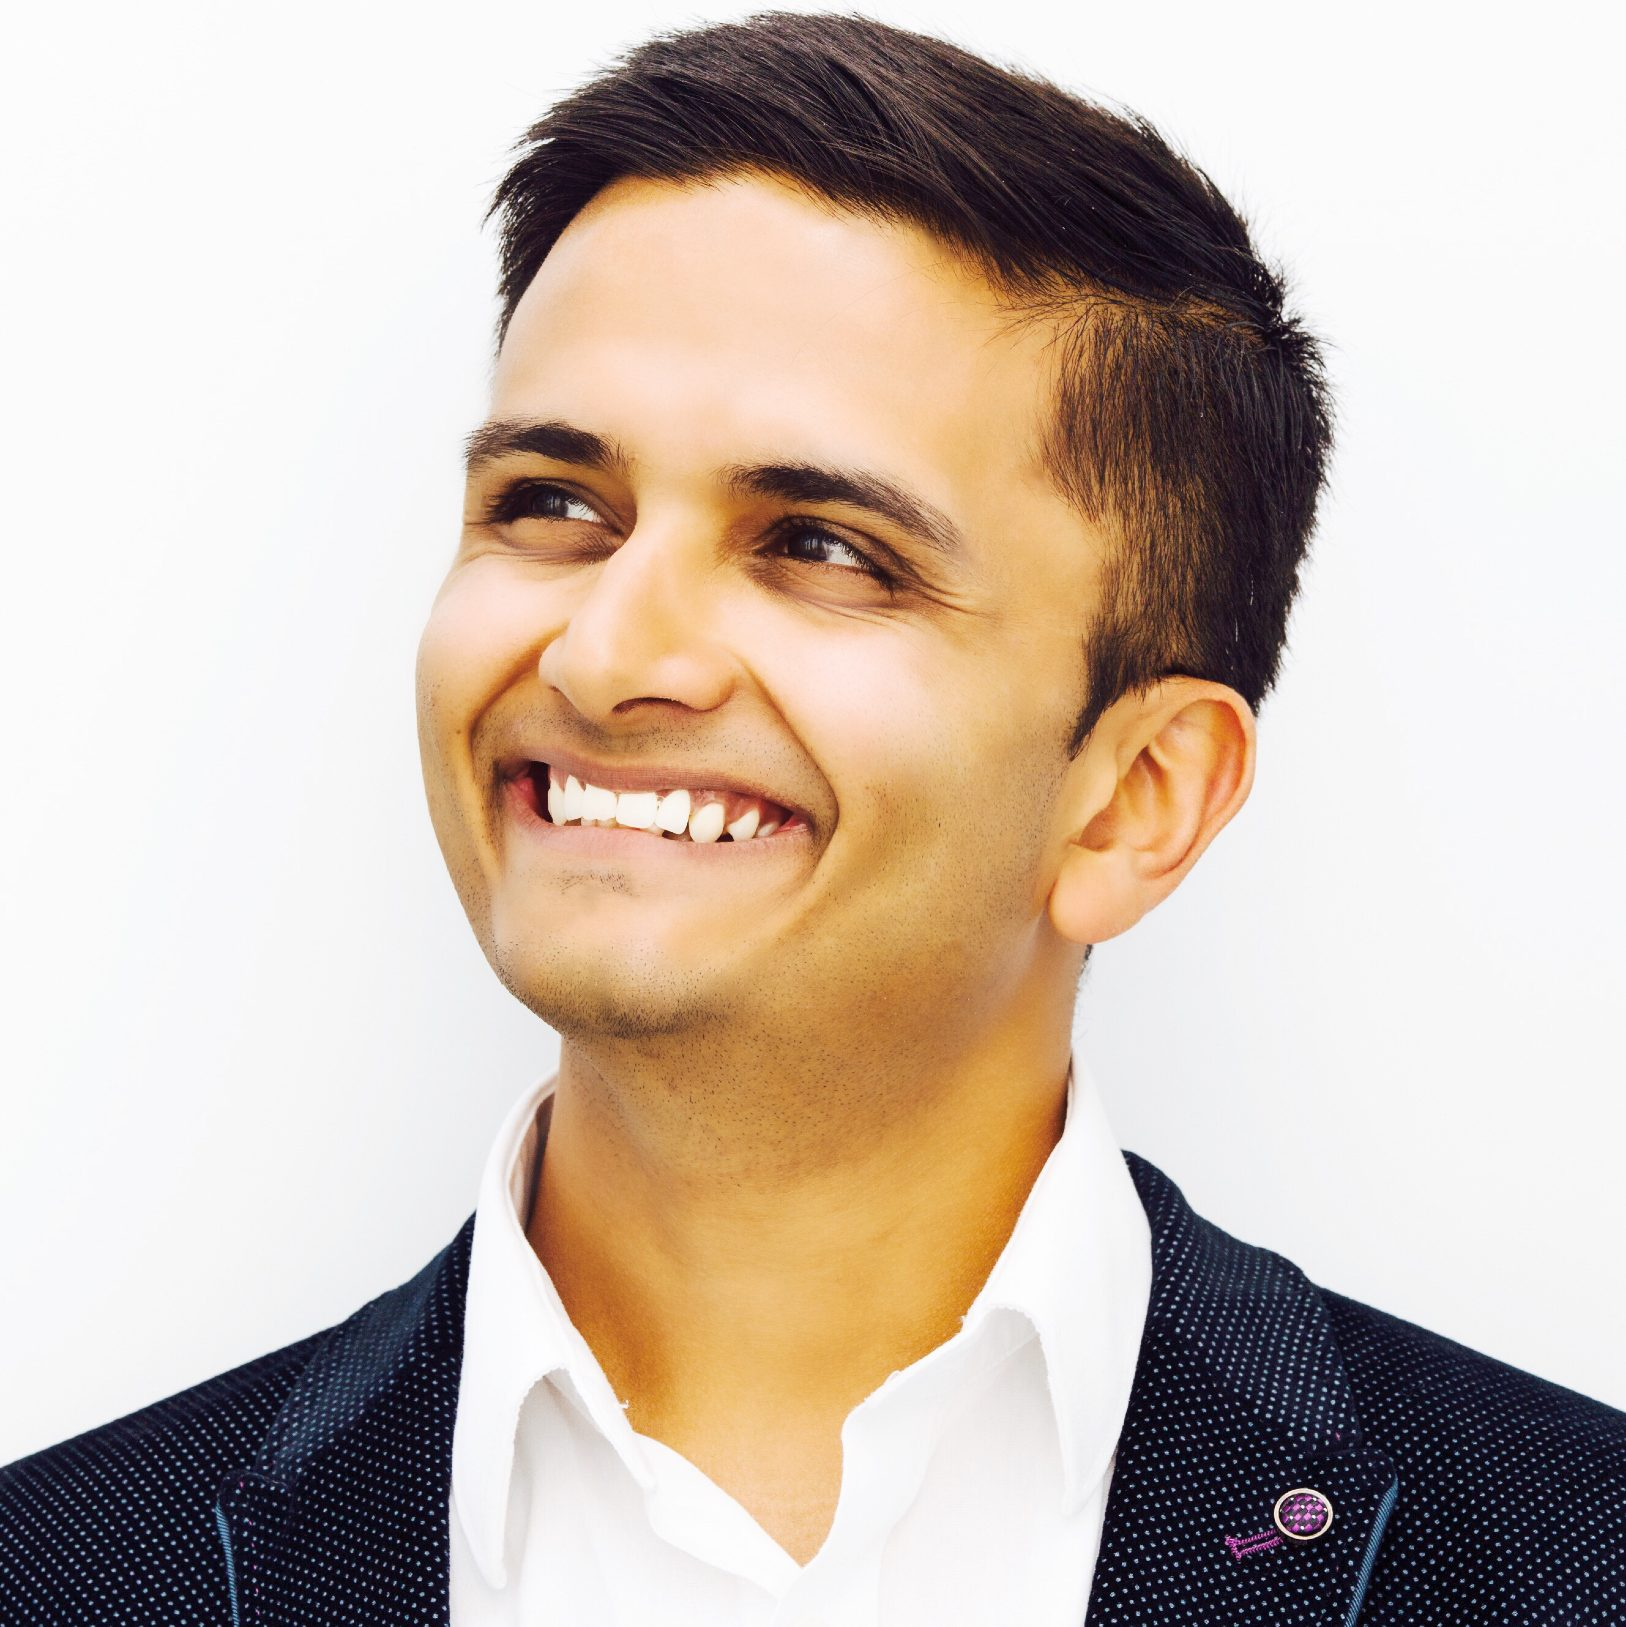 Bhavesh Vaghela: Digital Product Owner